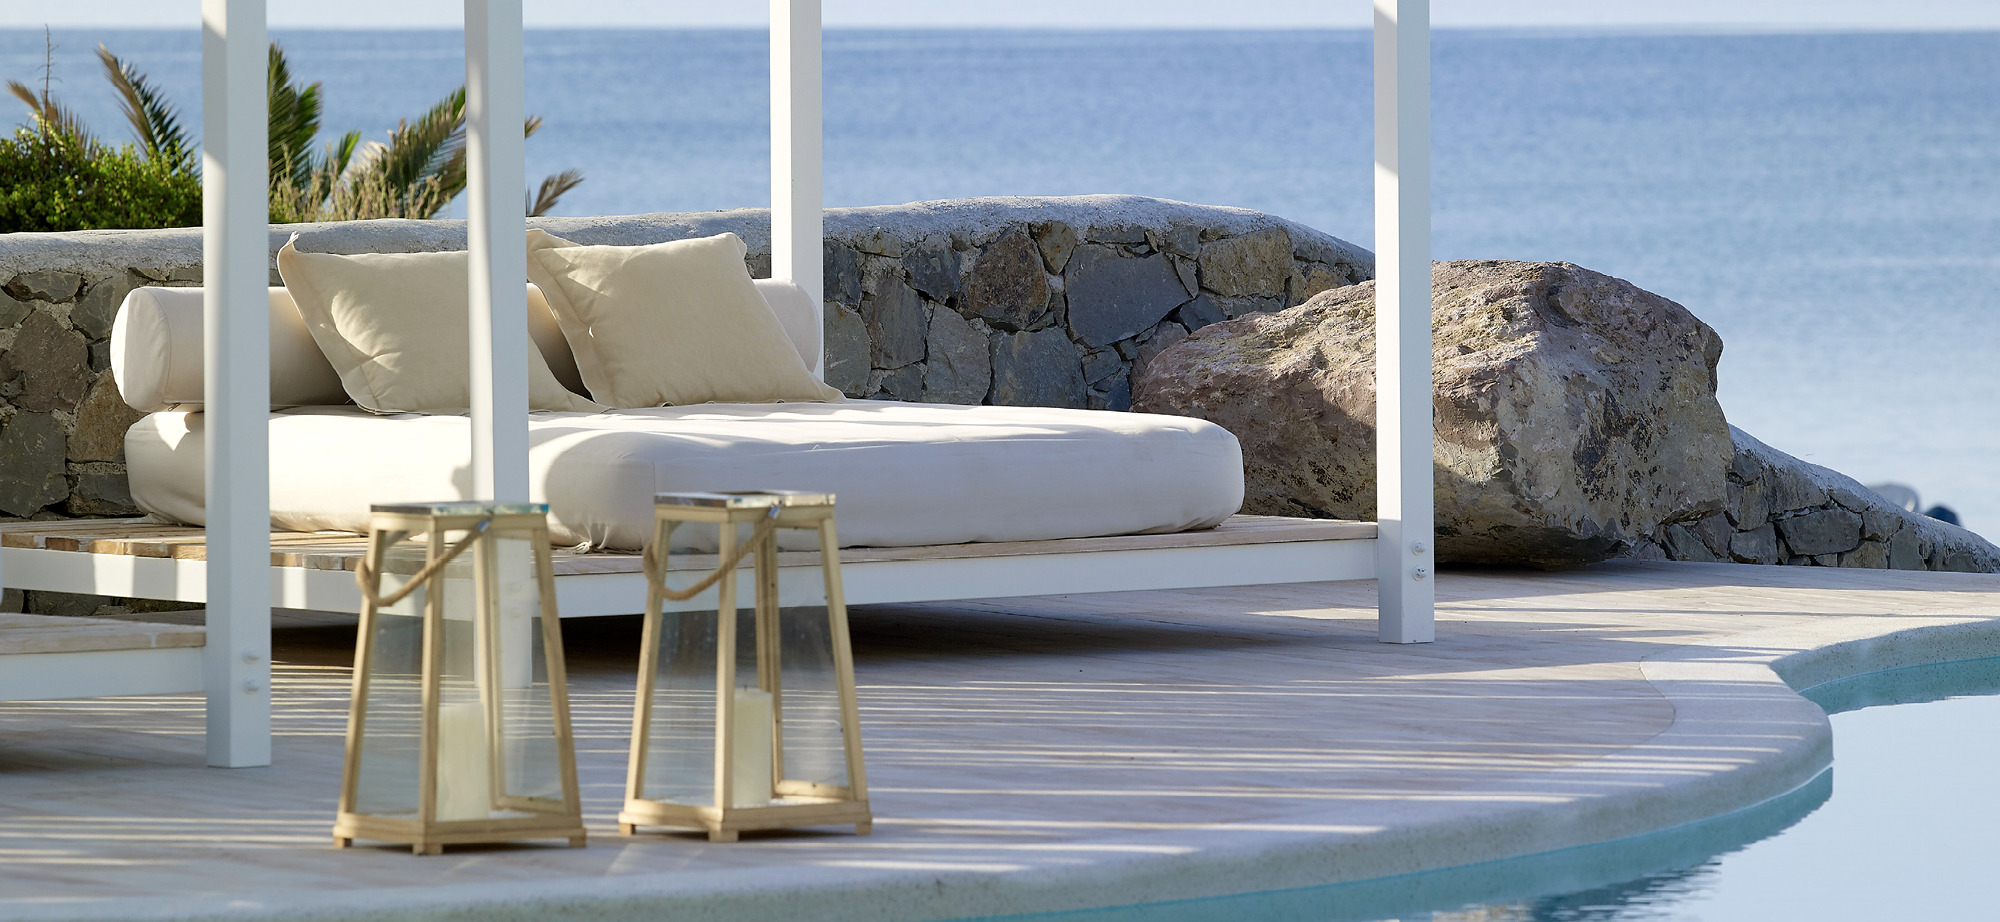 Sundbeds_and_swimming_pool_Artemis_Deluxe_Rooms_Milos_island_Greece_Cyclades2